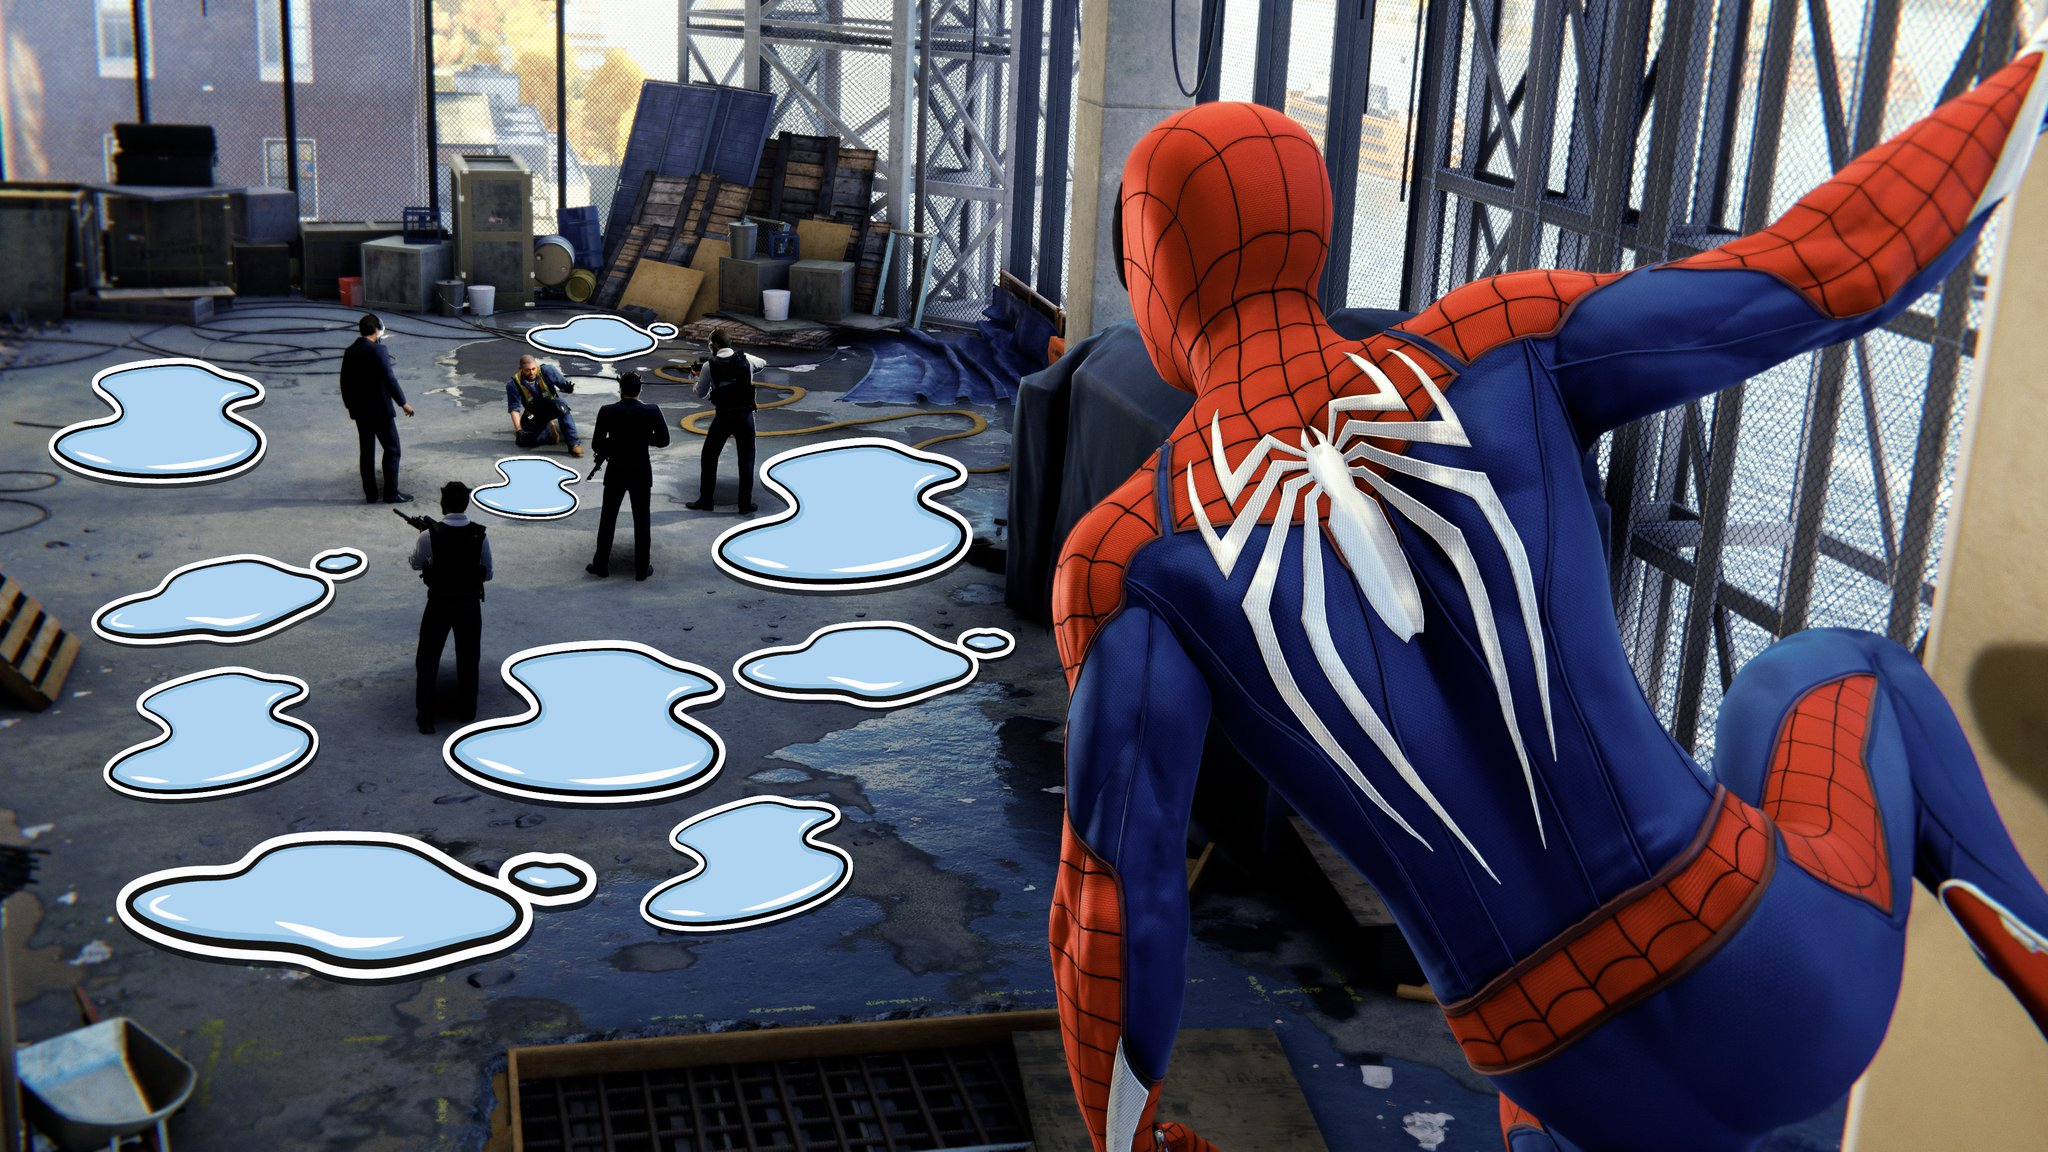 Finally, Players Can Add As Many Puddles To Spider-Man As They Want